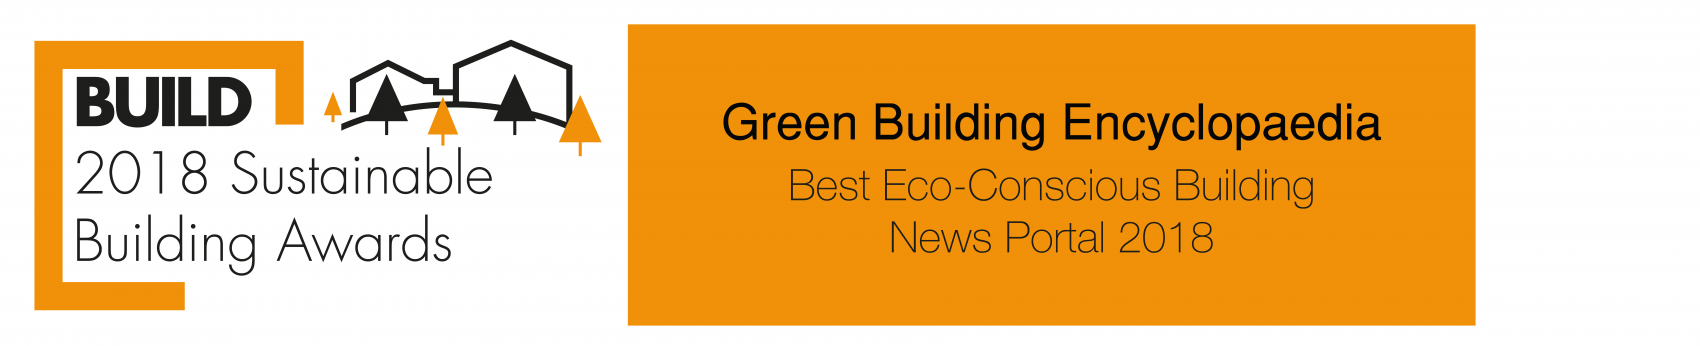 BUILD 2018 Sustainable Building Awards G#16976